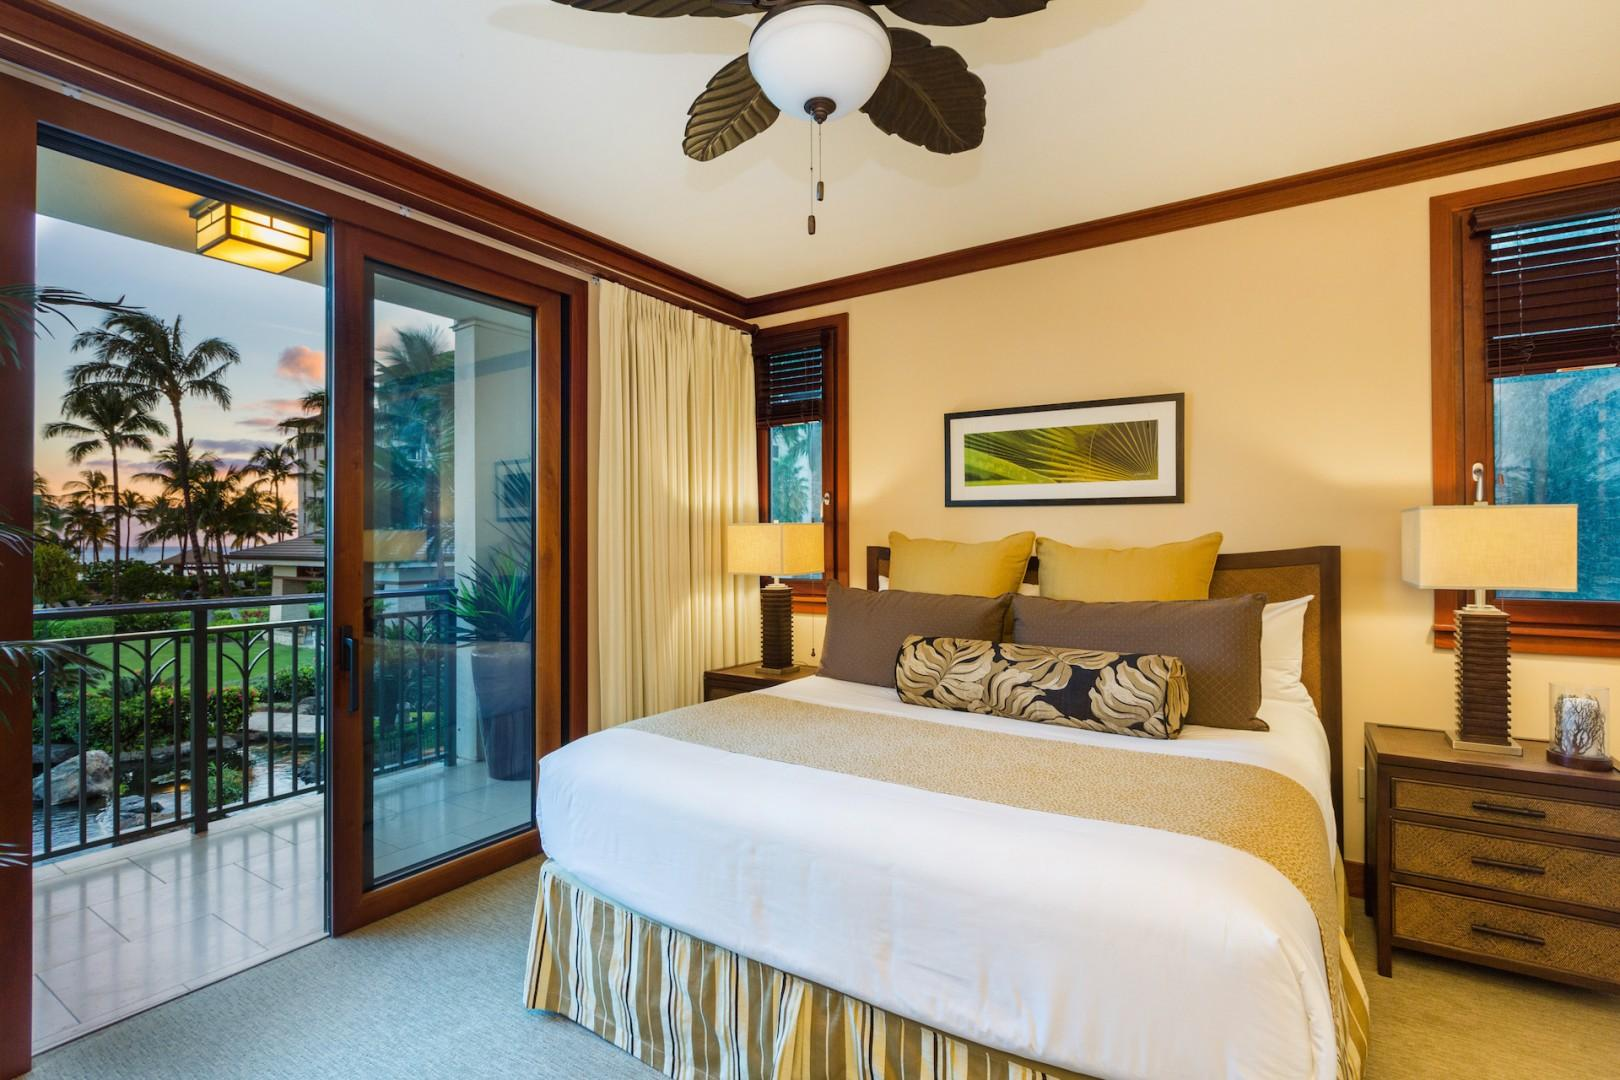 The master bedroom with en suite bath provides beautiful ocean, garden, pool and koi pond views and convenient lanai access. Flat screen TV, ceiling fan, dresser drawers, AC thermostat, separate deep soaking tub and shower, dual sinks, walk-in closet.